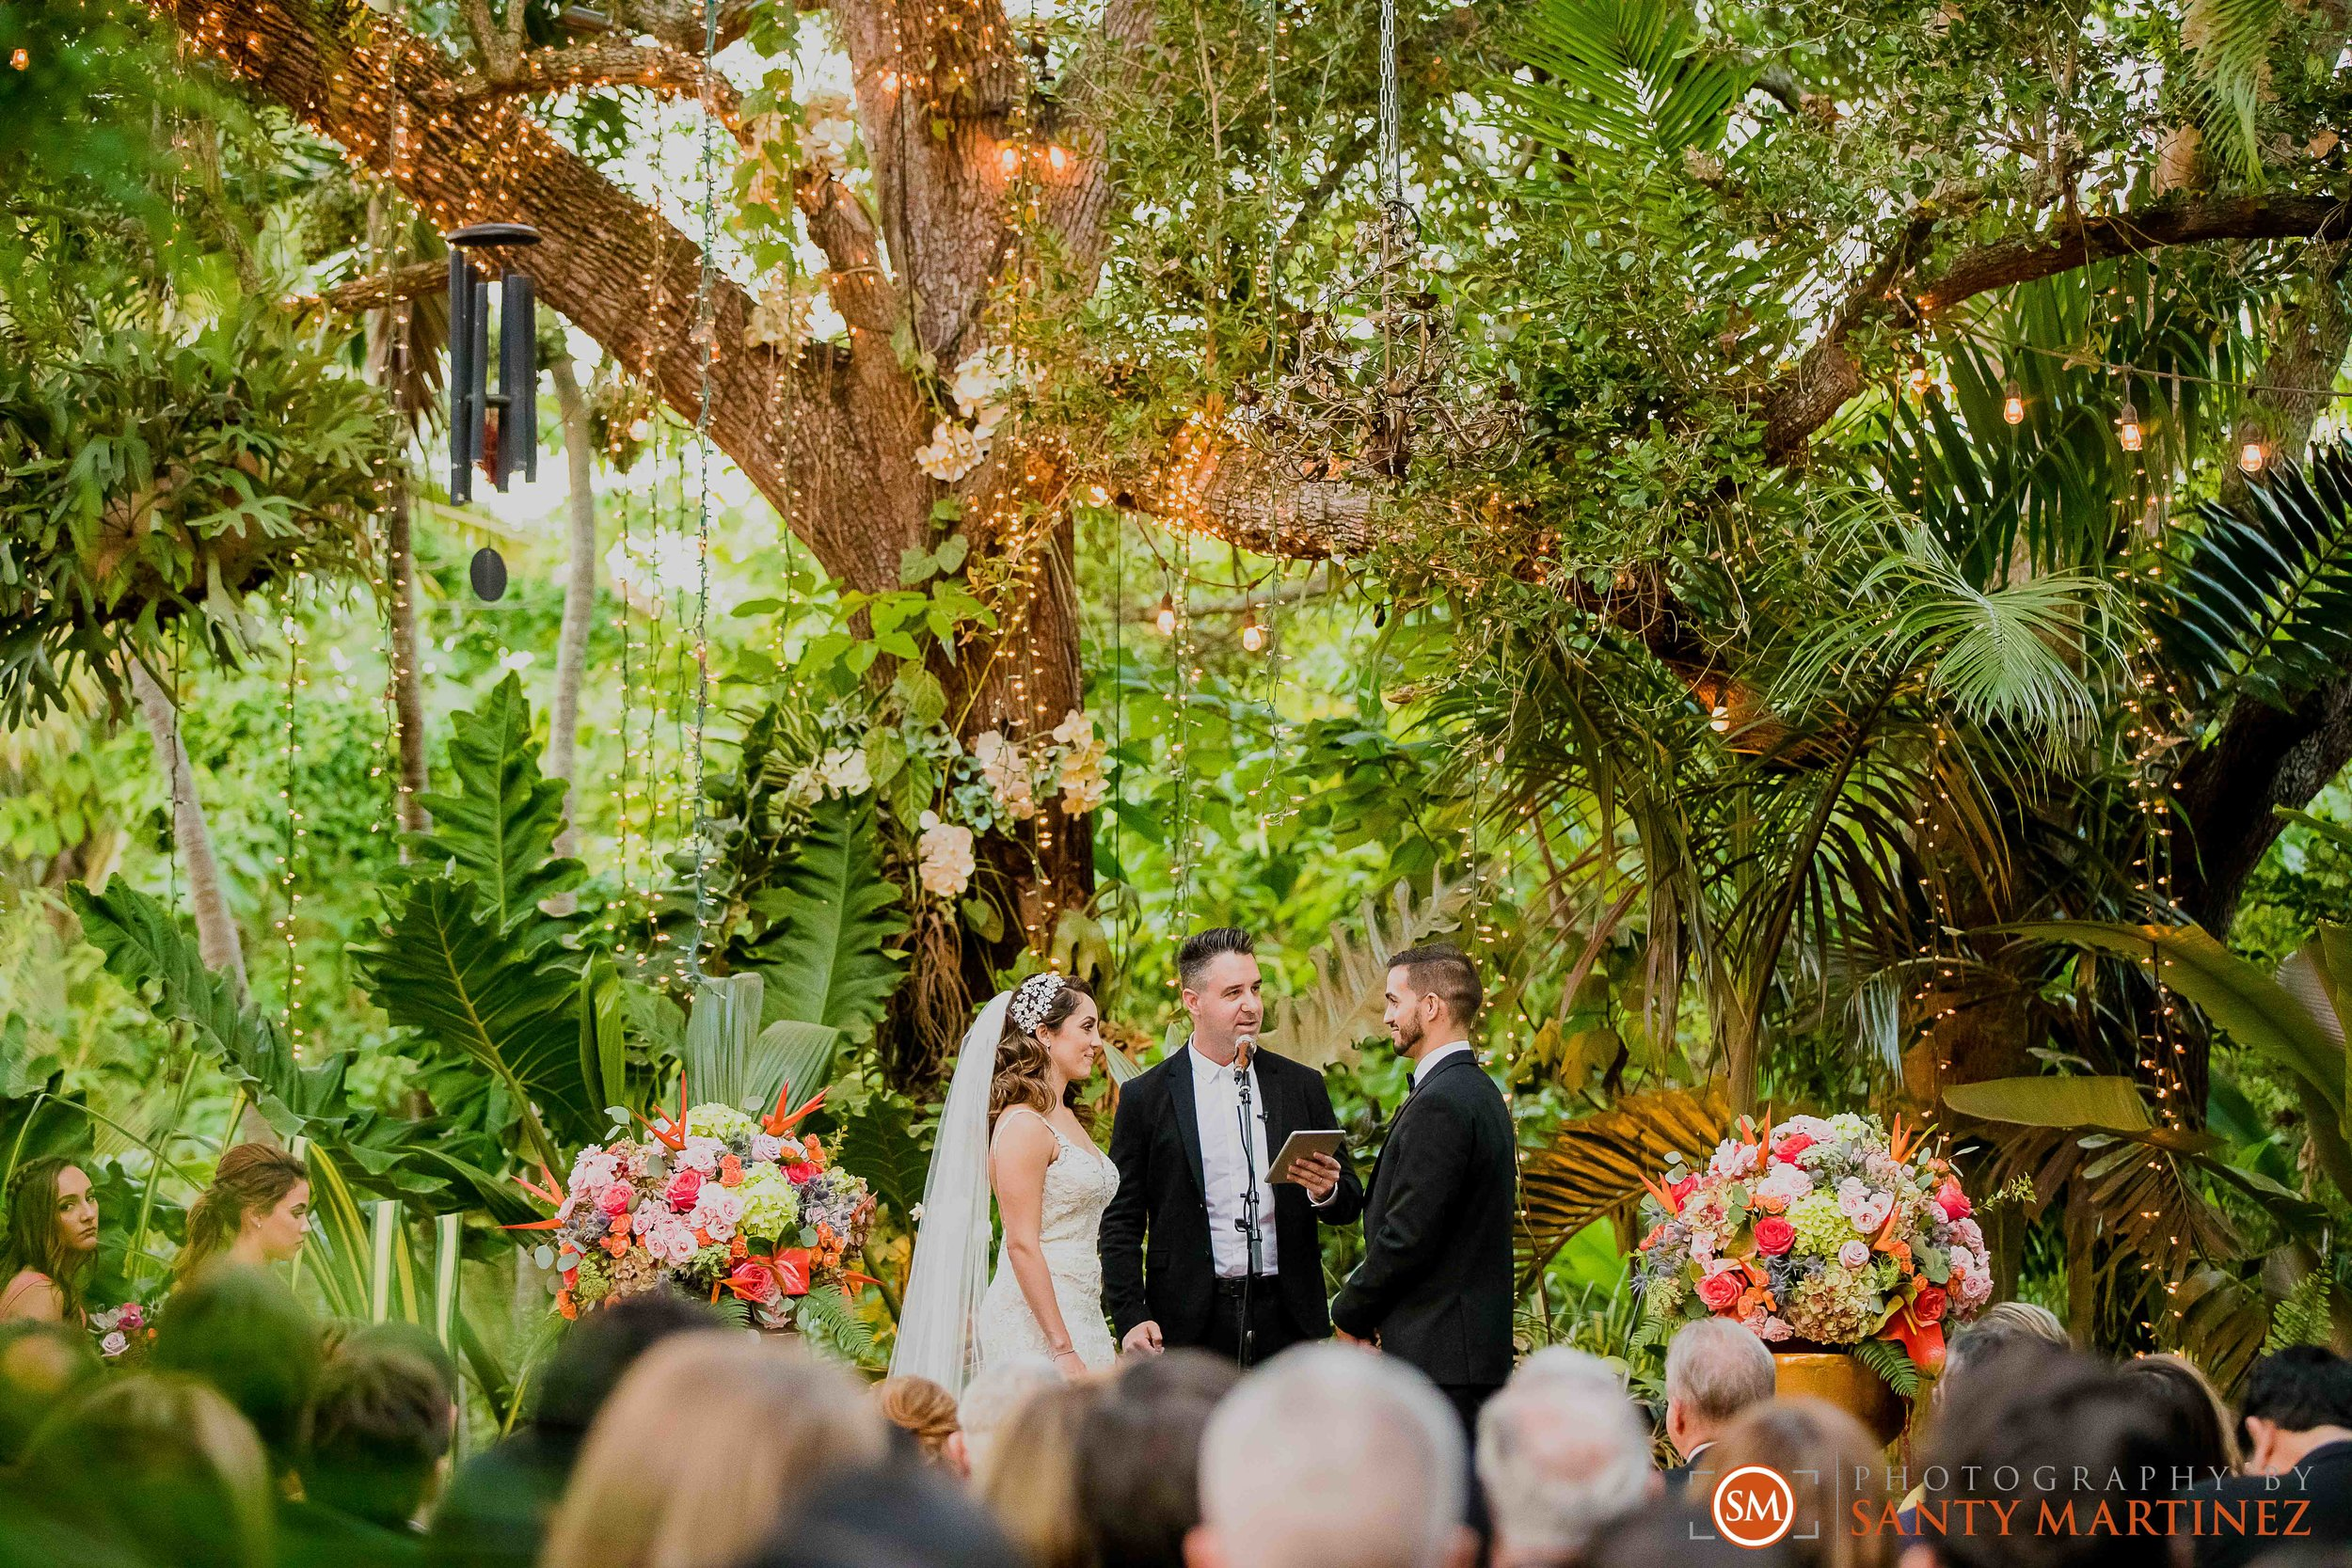 Wedding+at+the+The+Miller+Plantation+-+Santy+Martinez-37.jpg